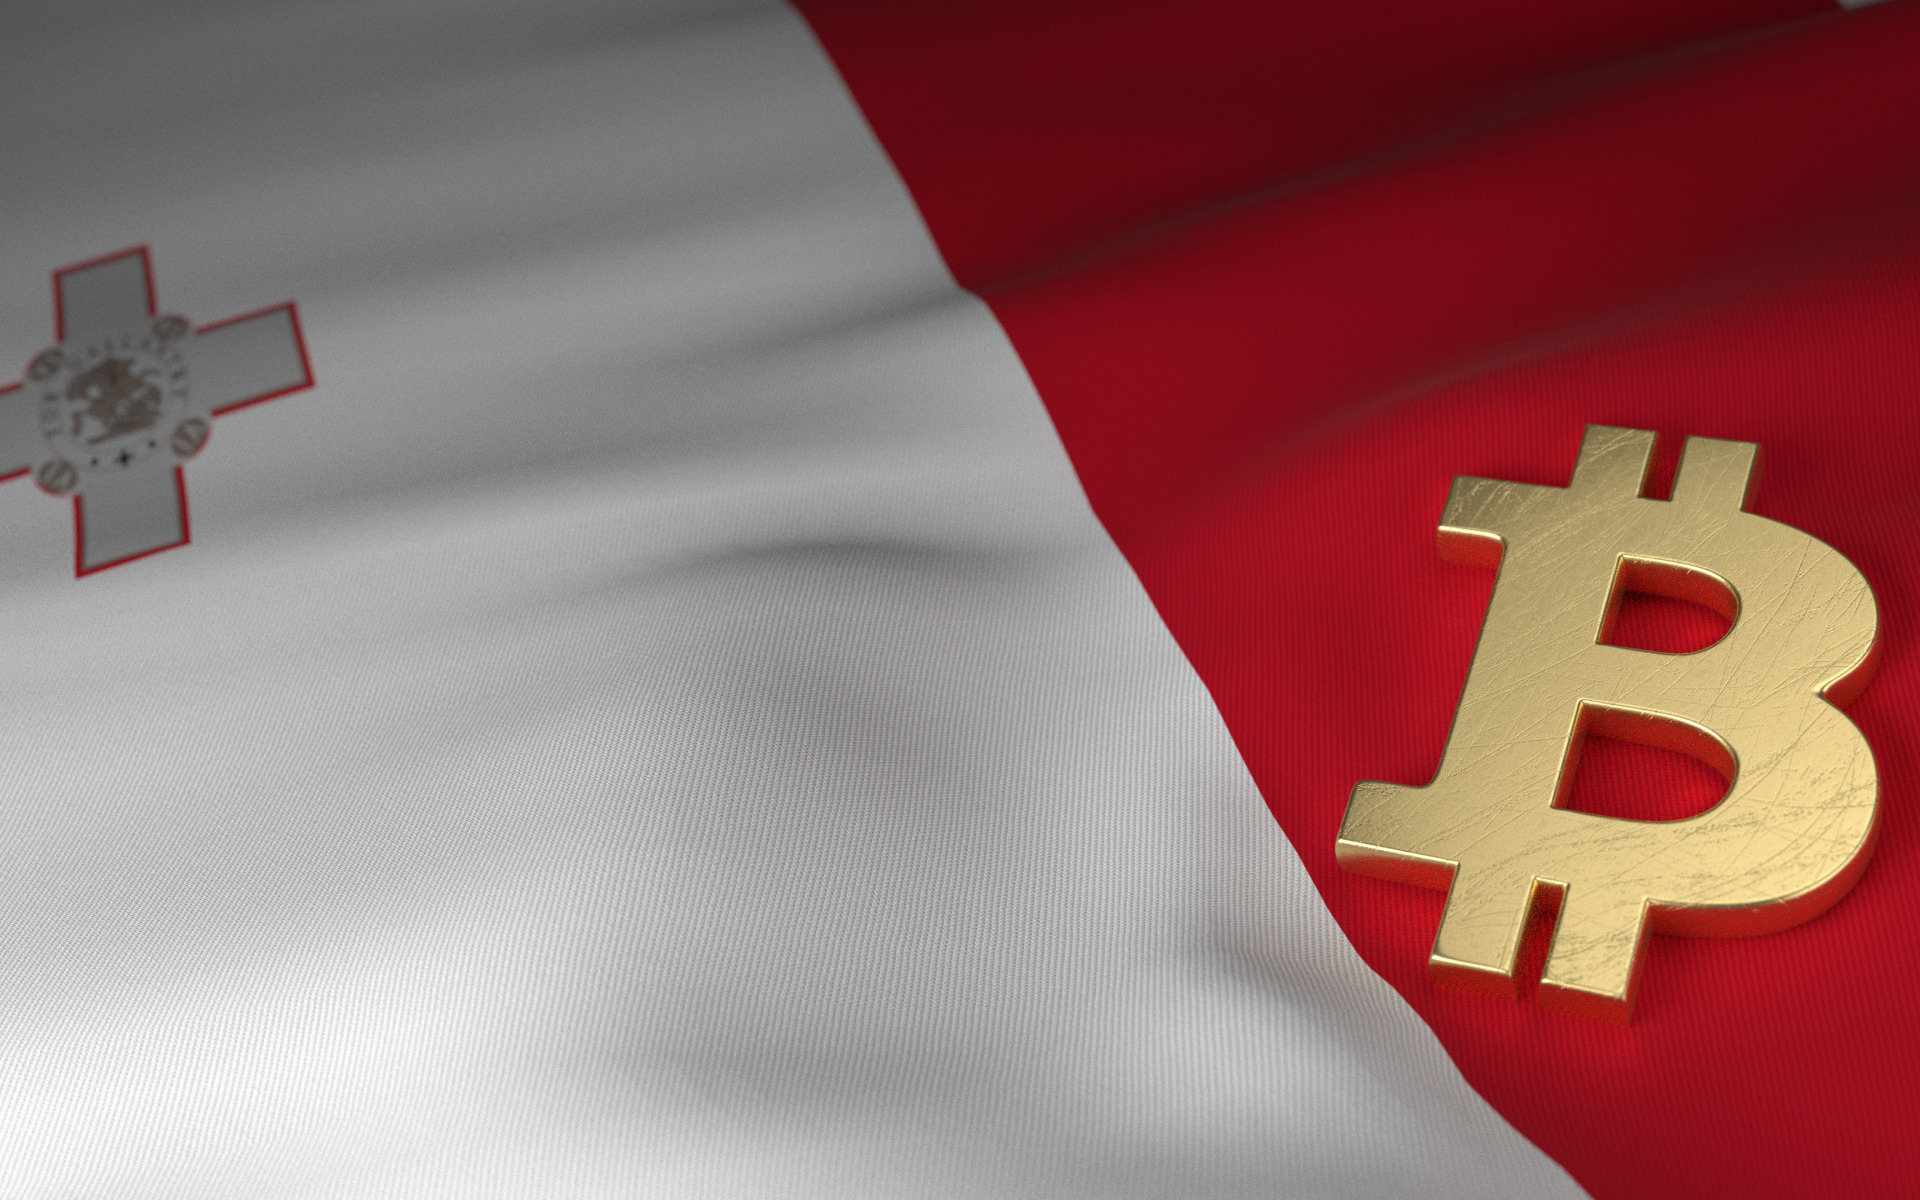 Malta Regulator Clarifies Legal Status of Binance